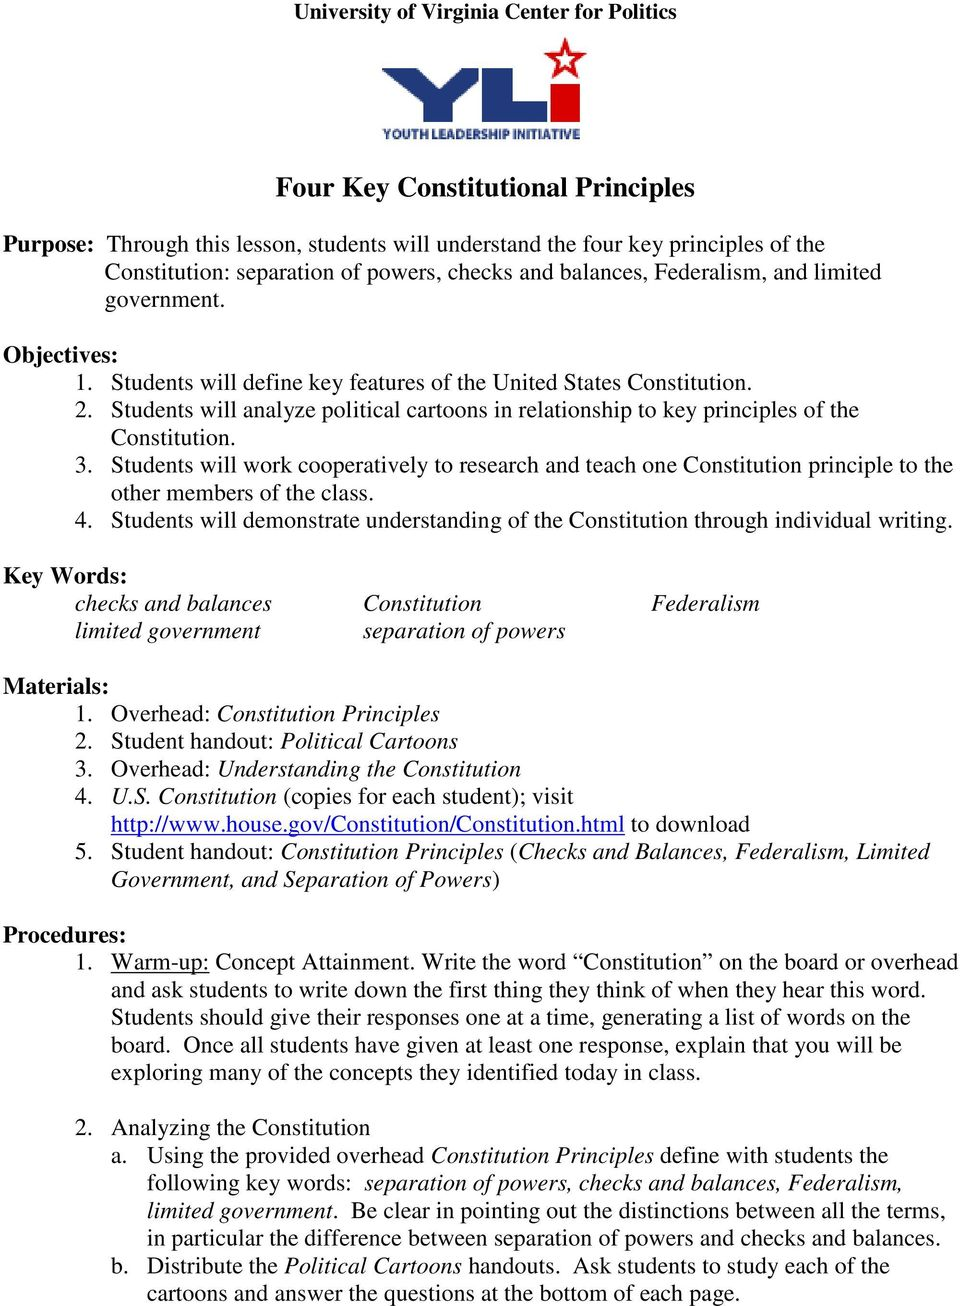 worksheet Seven Principles Of Government Worksheet Answers four key constitutional principles pdf students will analyze political cartoons in relationship to of the constitution 3